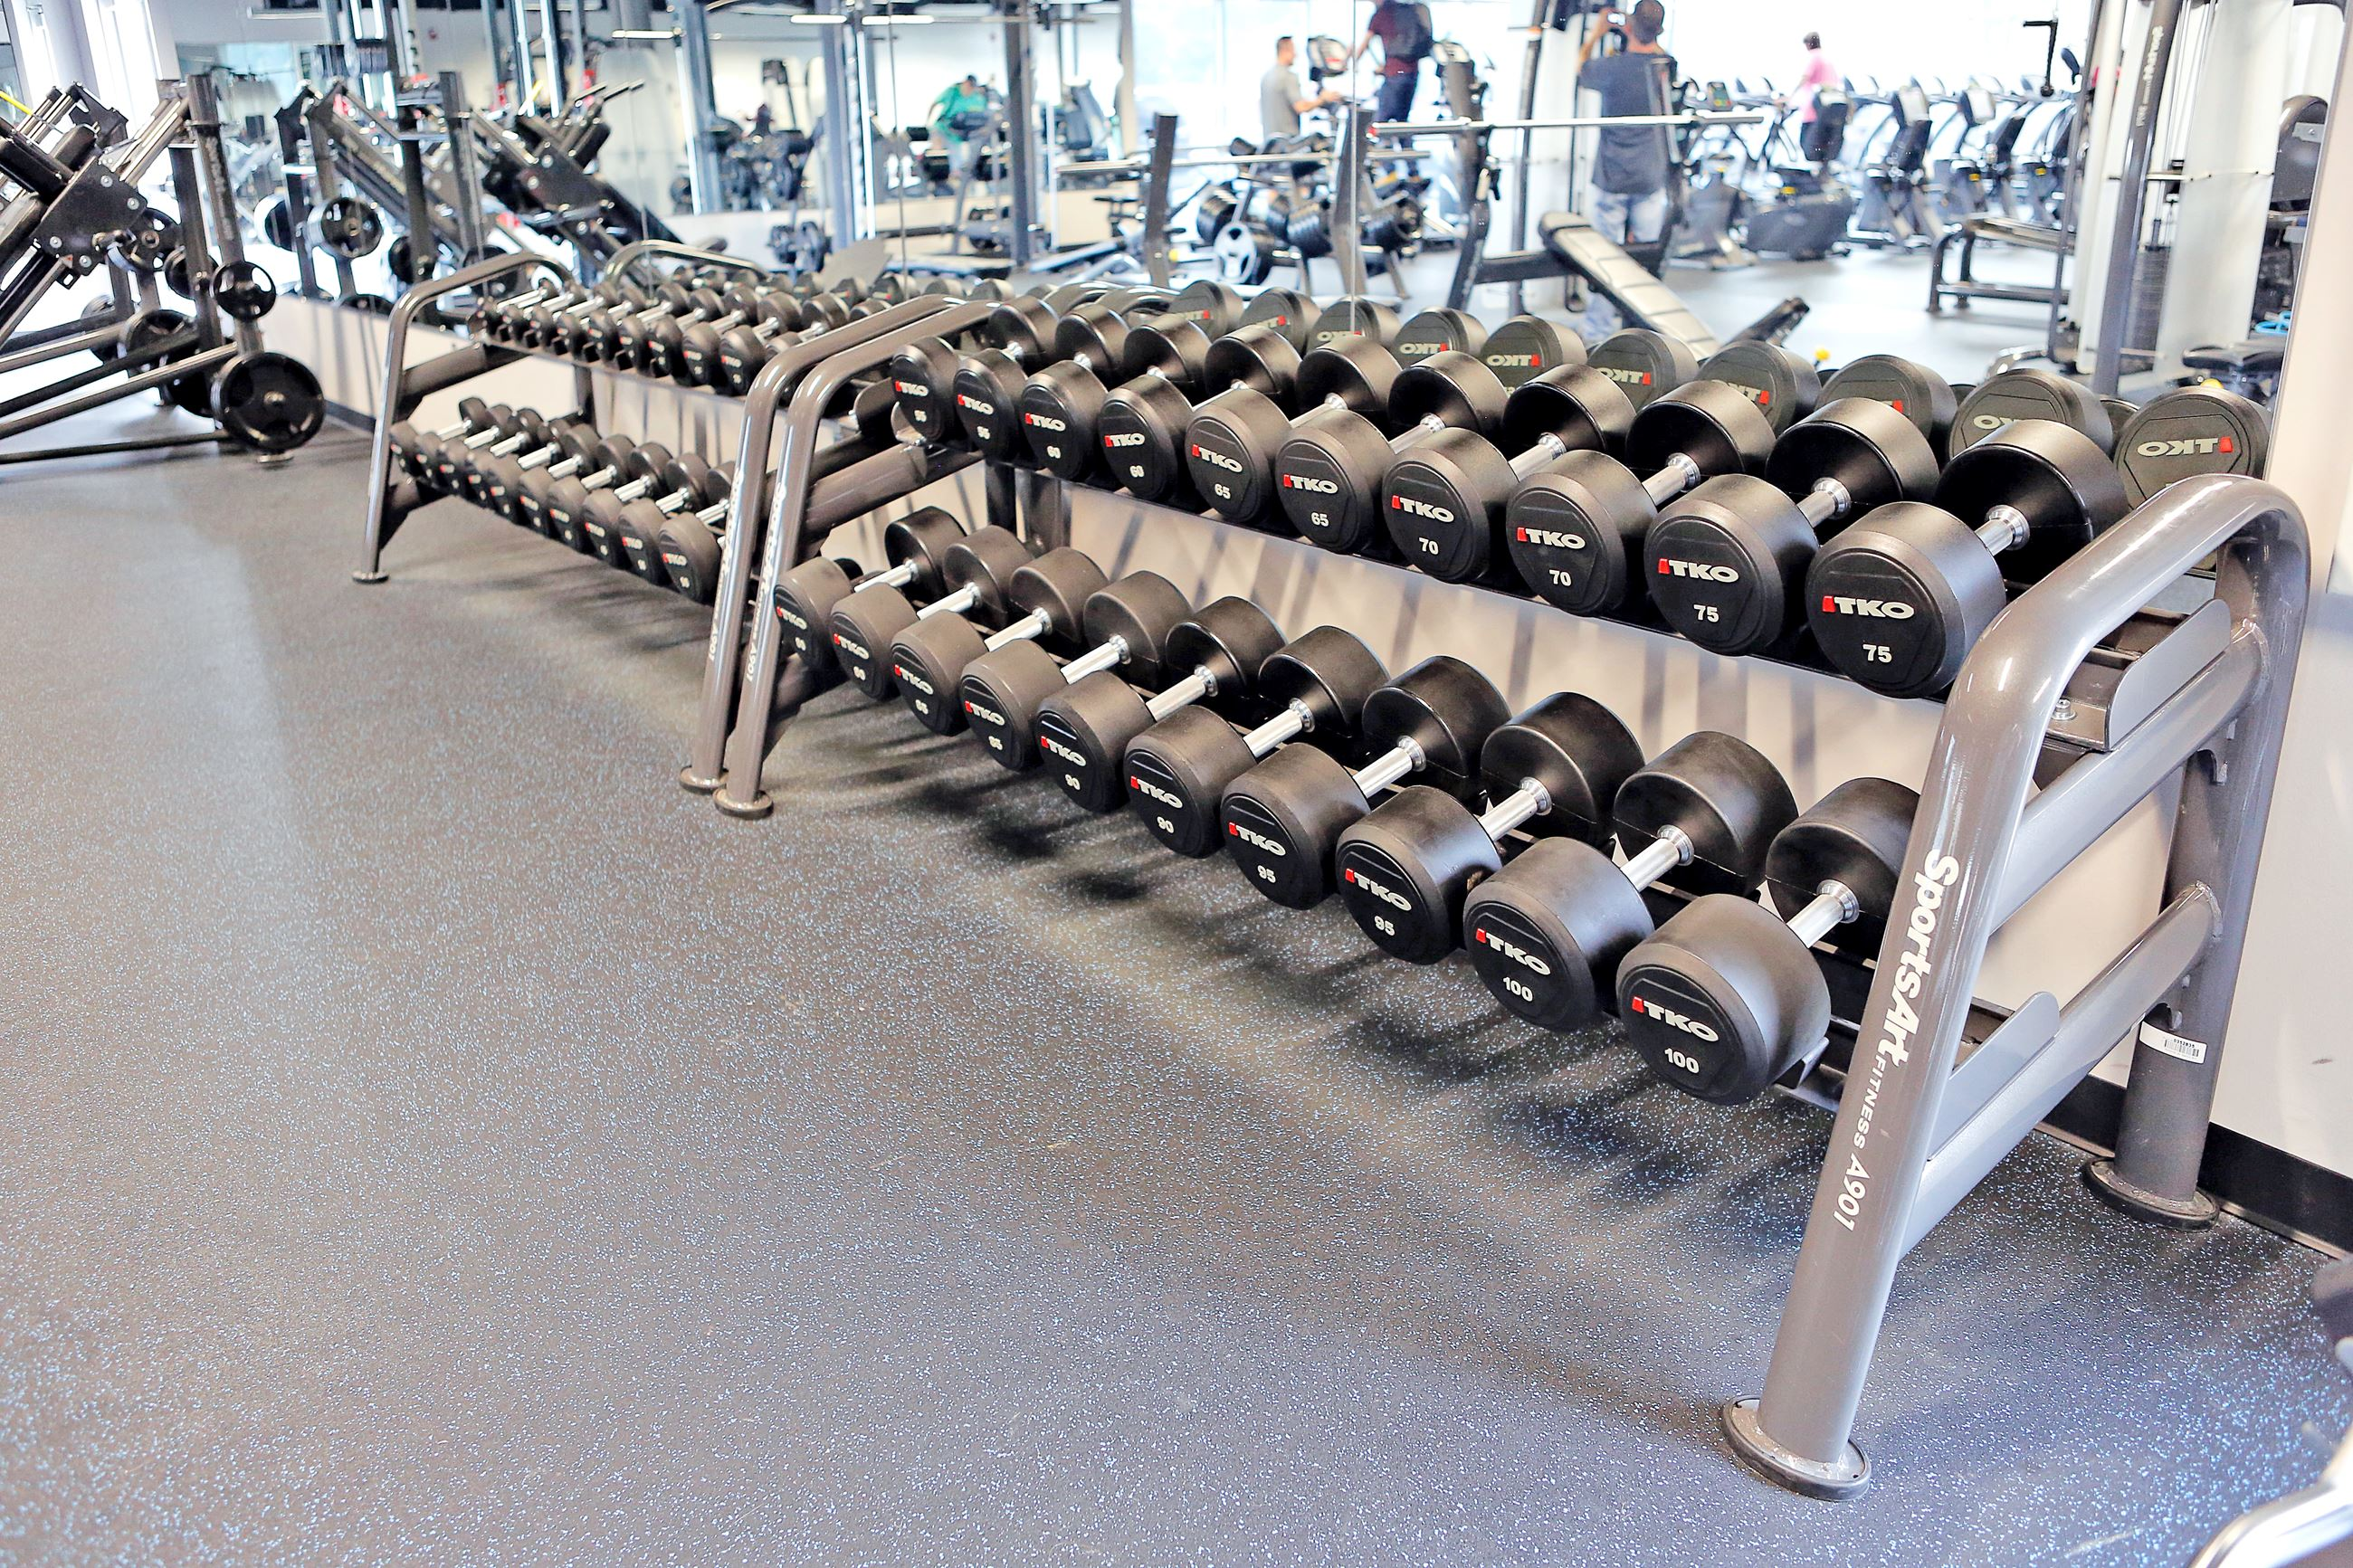 Veterans Park Community Center Fitness Center Free Weights